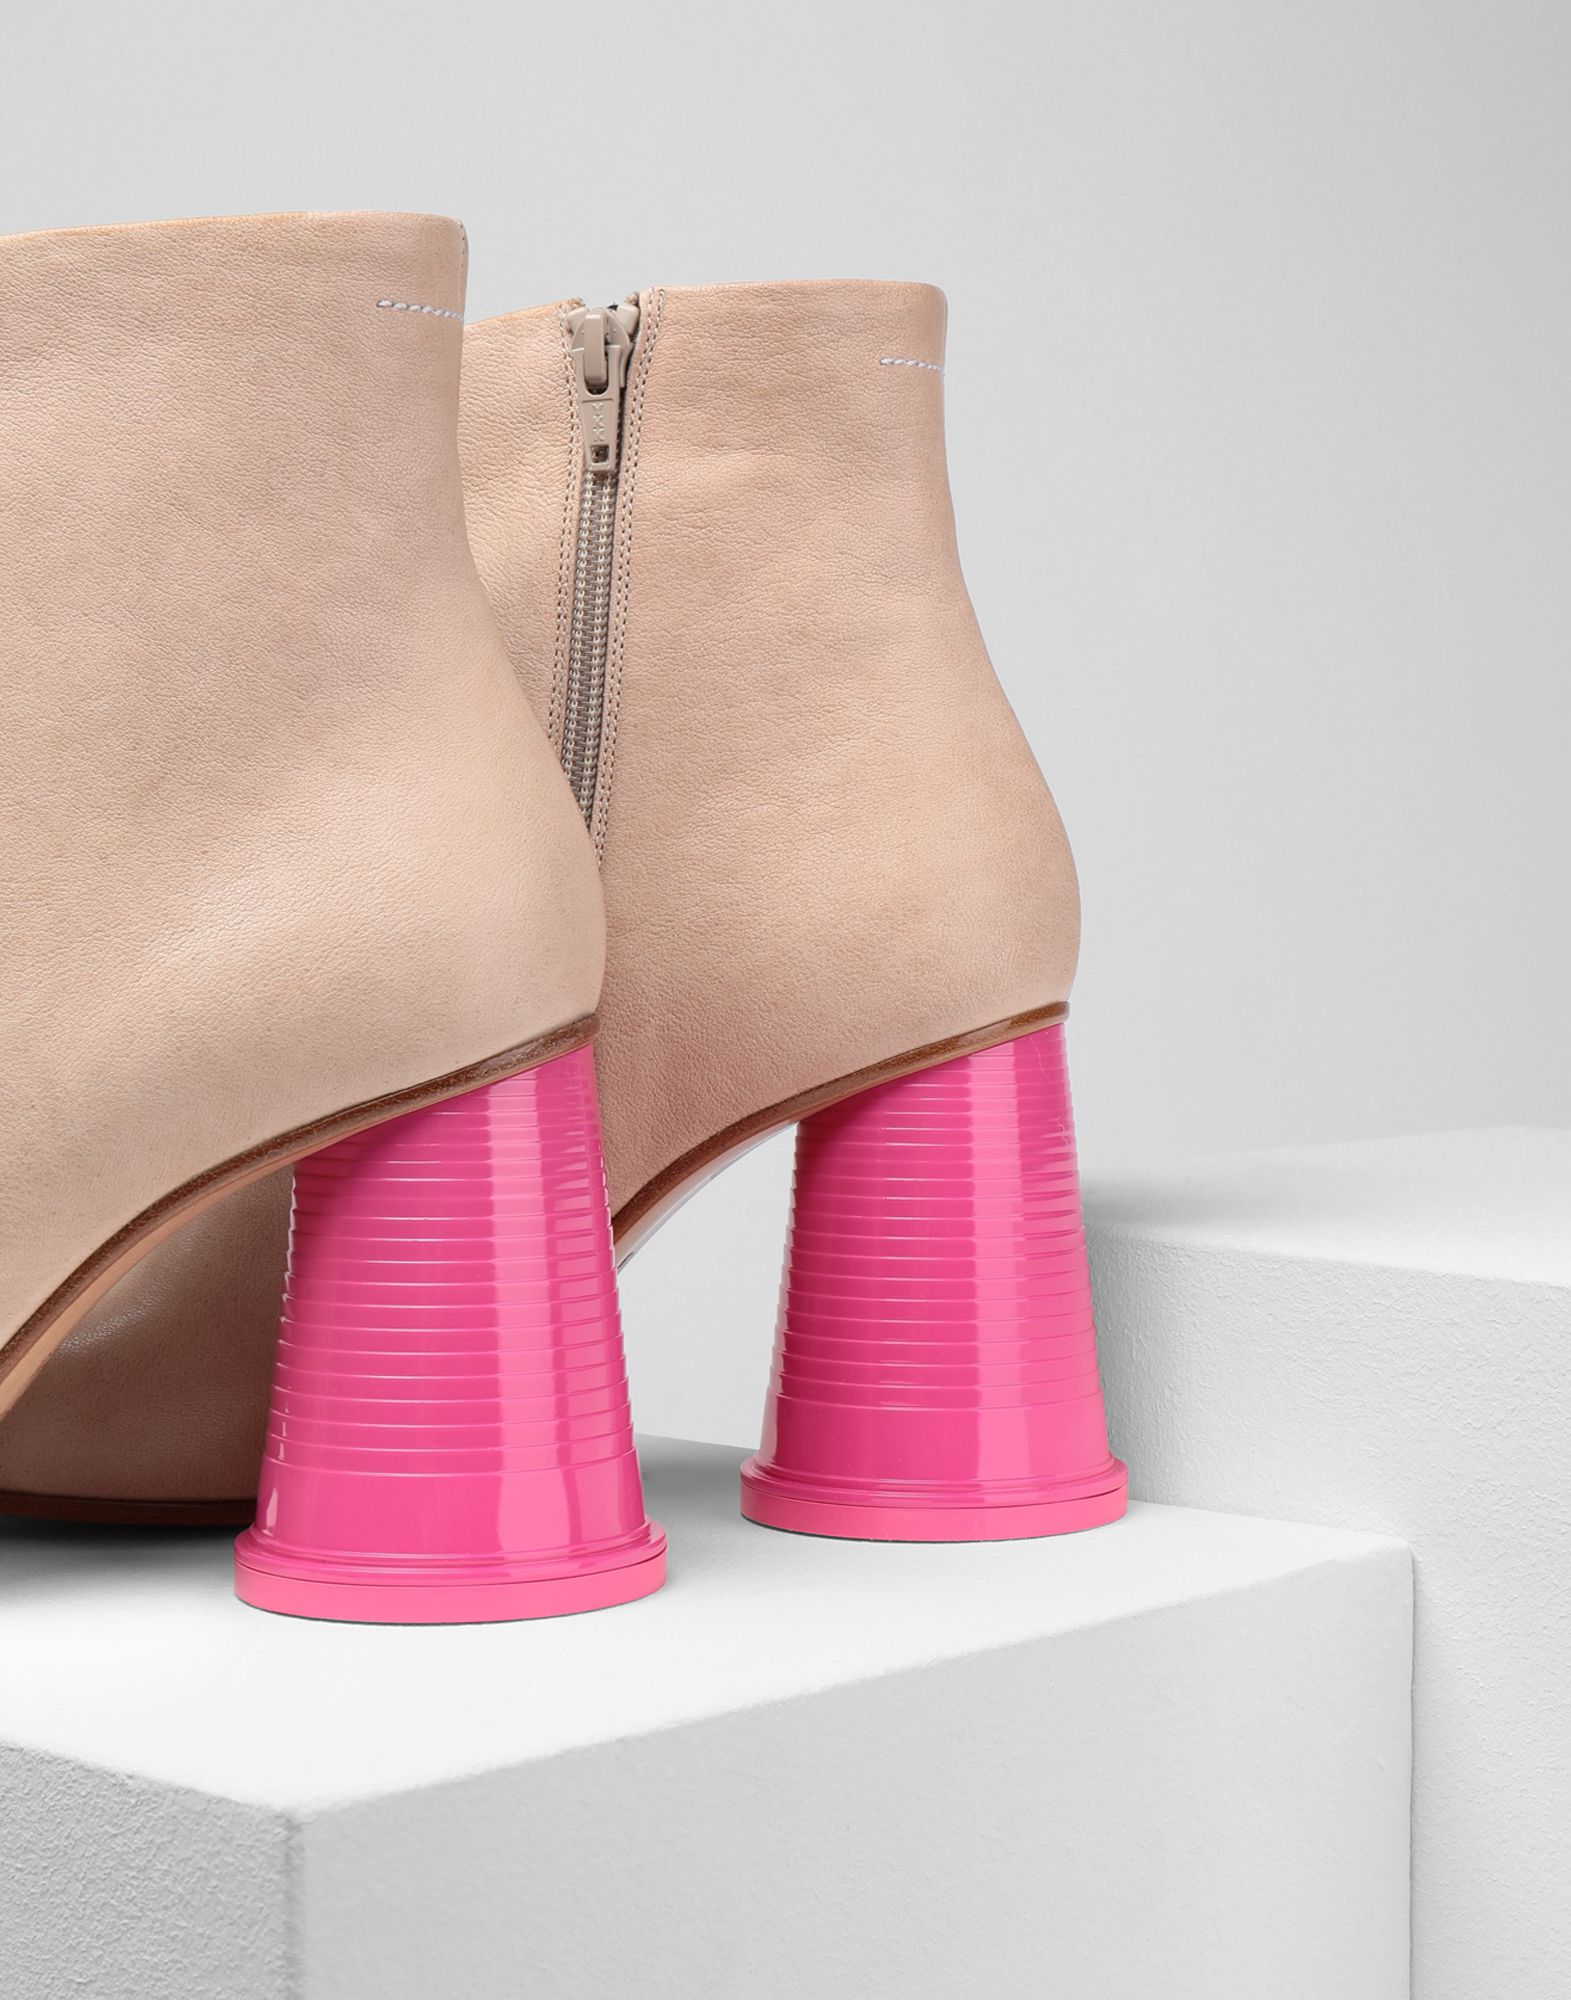 MM6 MAISON MARGIELA Ankle boots with cup heels Ankle boots Woman e